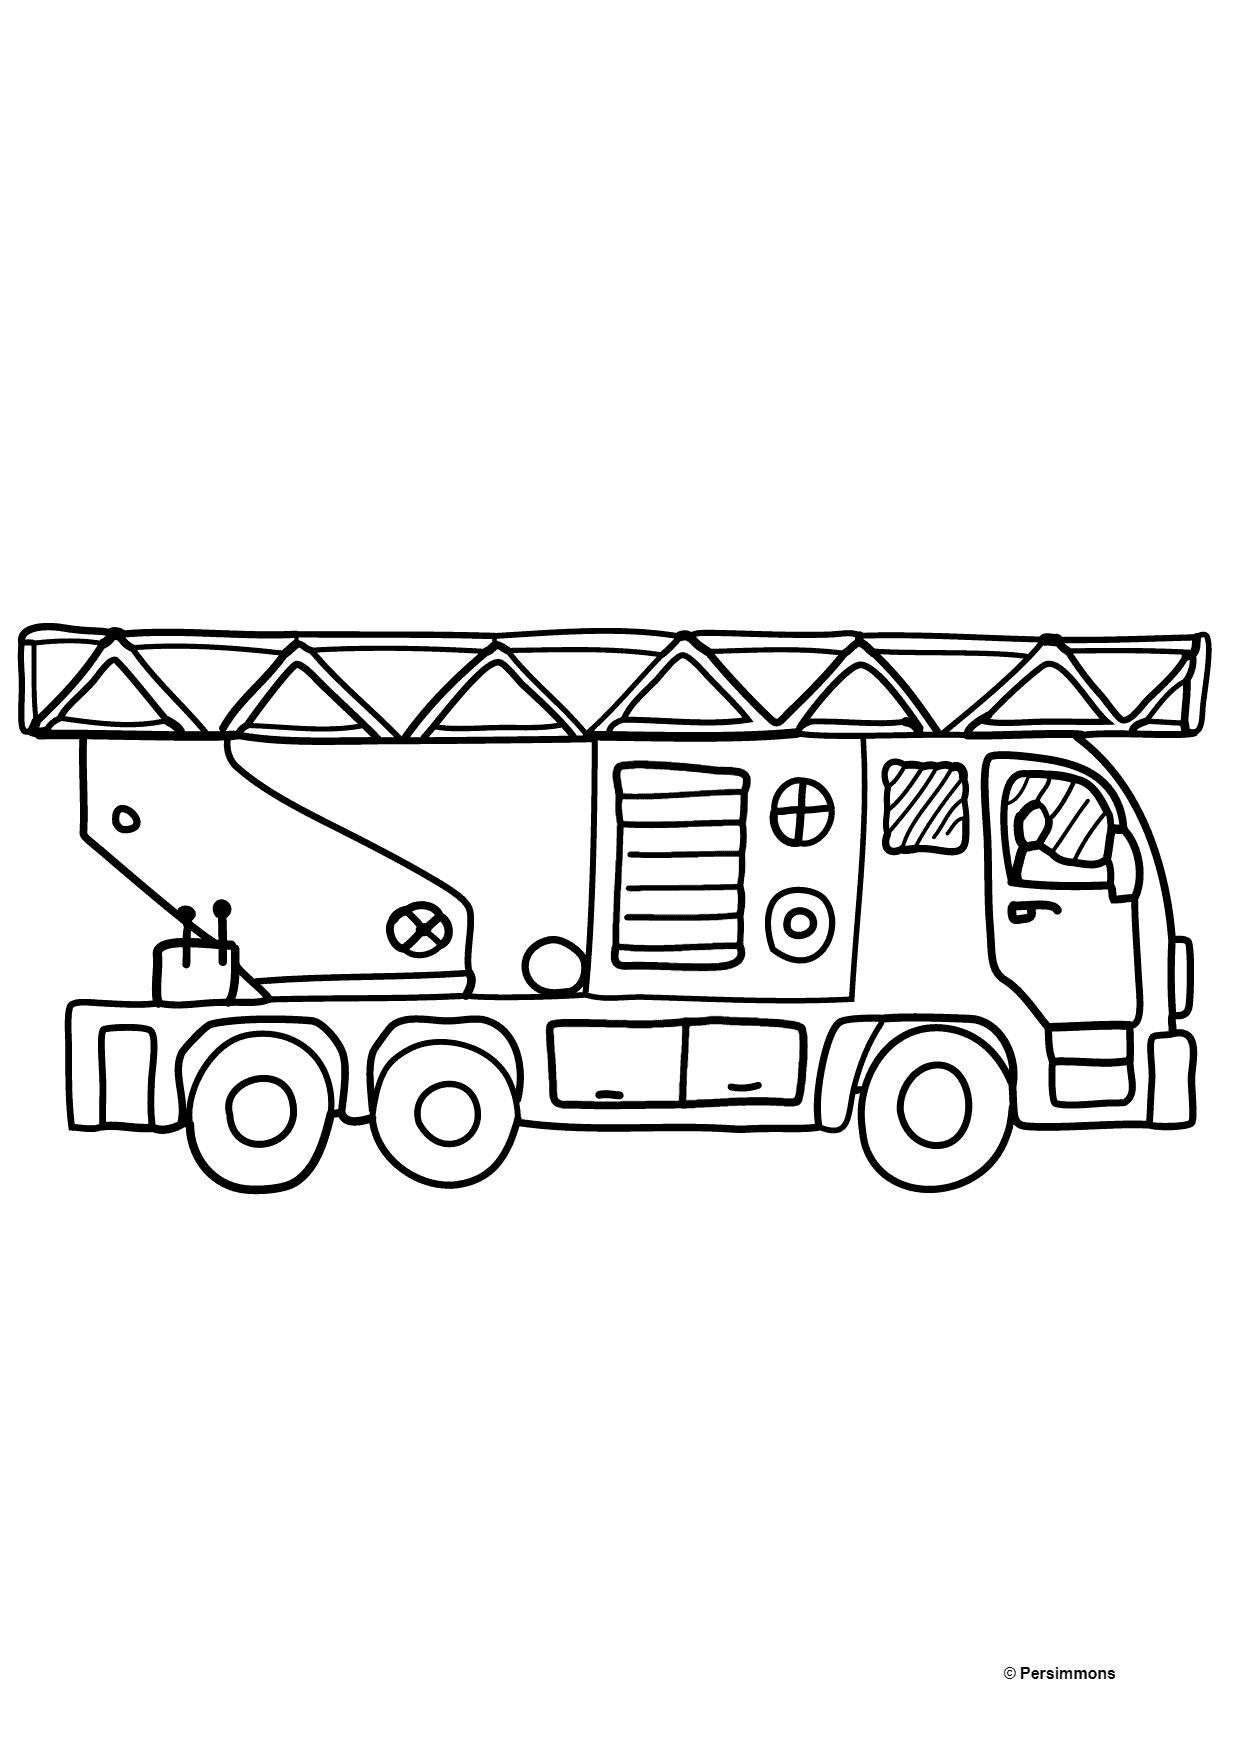 Coloring Page - A Fire Truck for Children